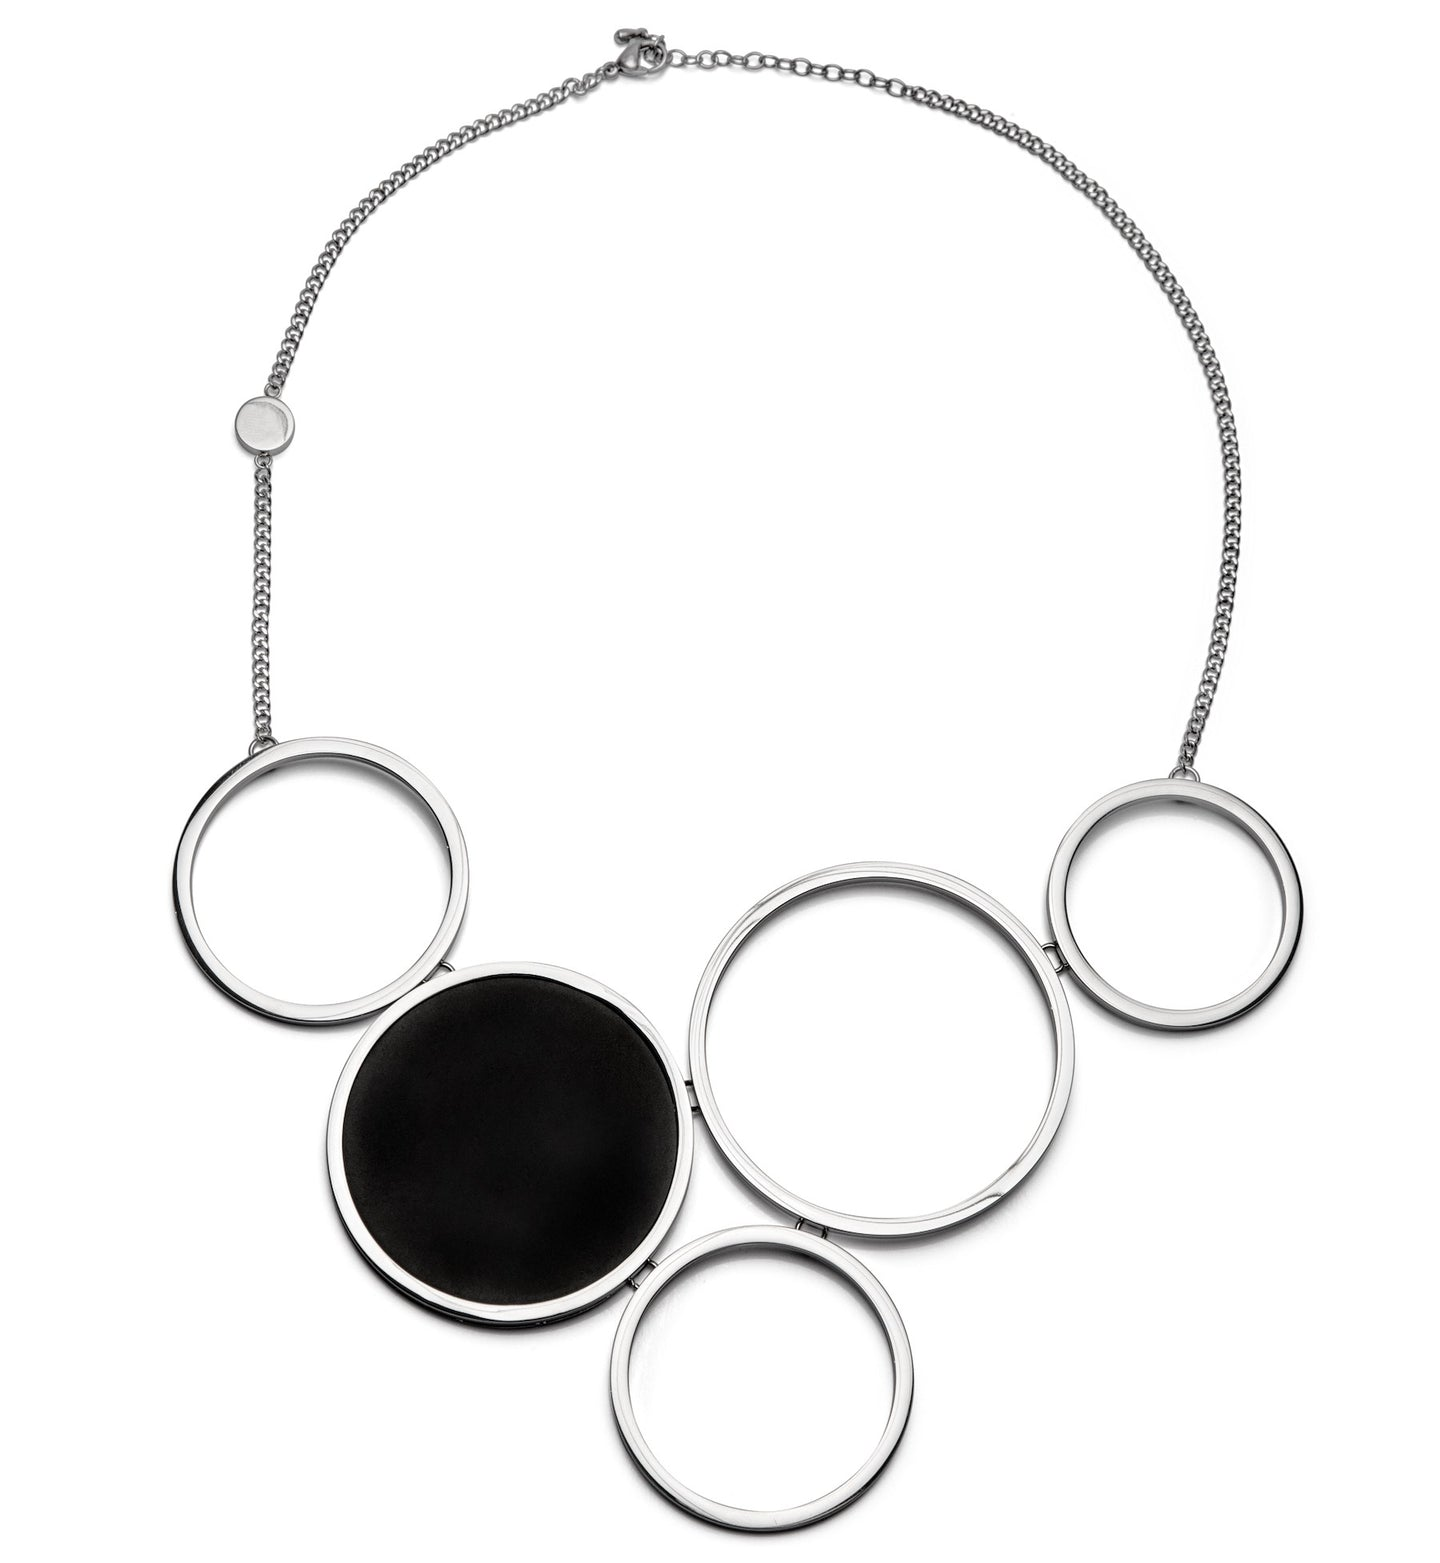 Luna - Statement Necklace